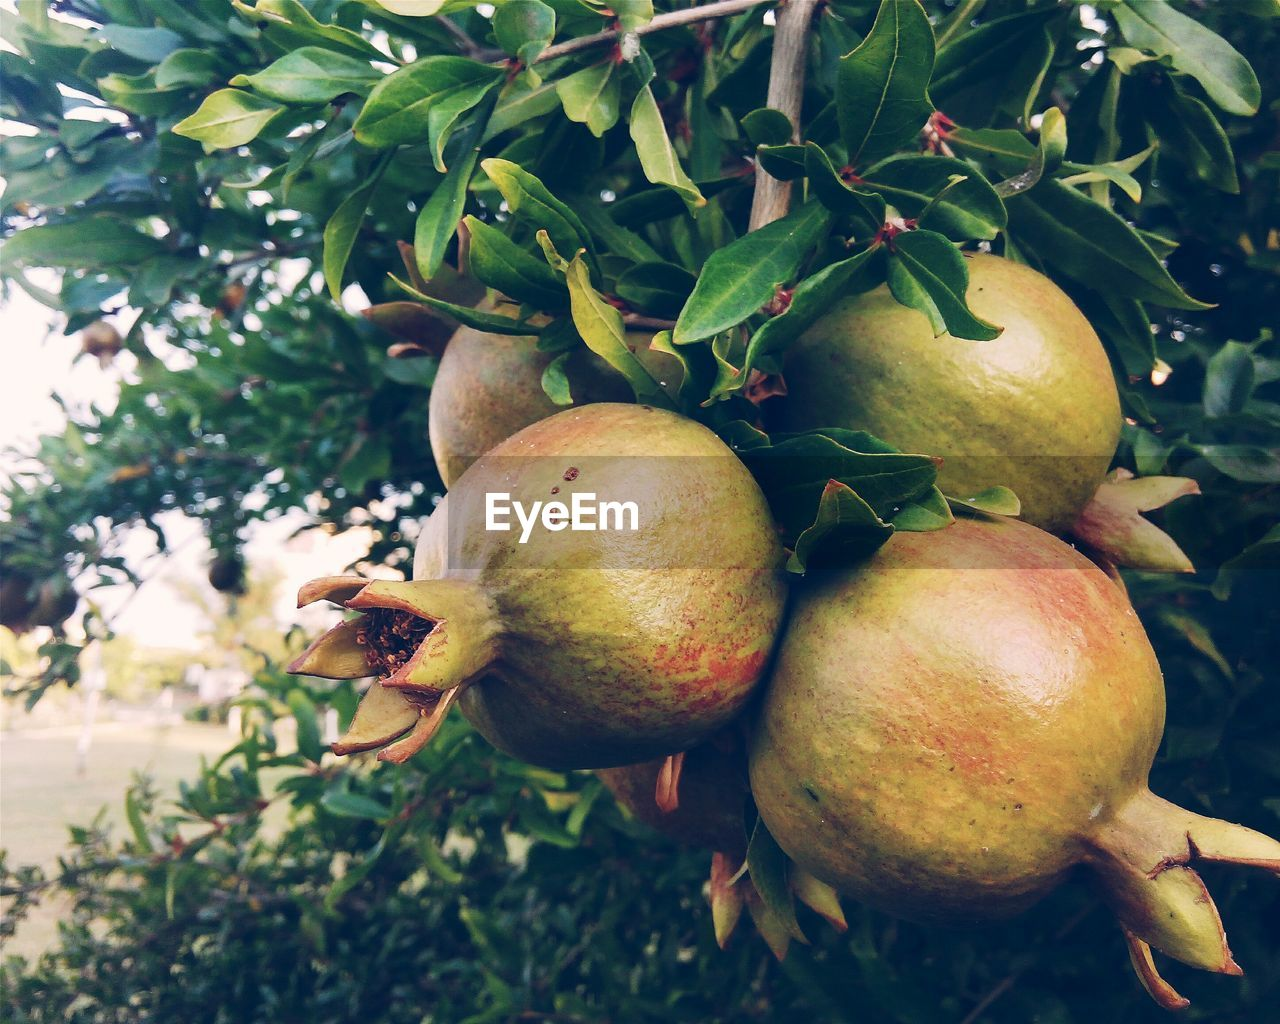 fruit, food and drink, food, healthy eating, freshness, tree, apple - fruit, day, growth, outdoors, leaf, close-up, no people, green color, nature, plant, pomegranate